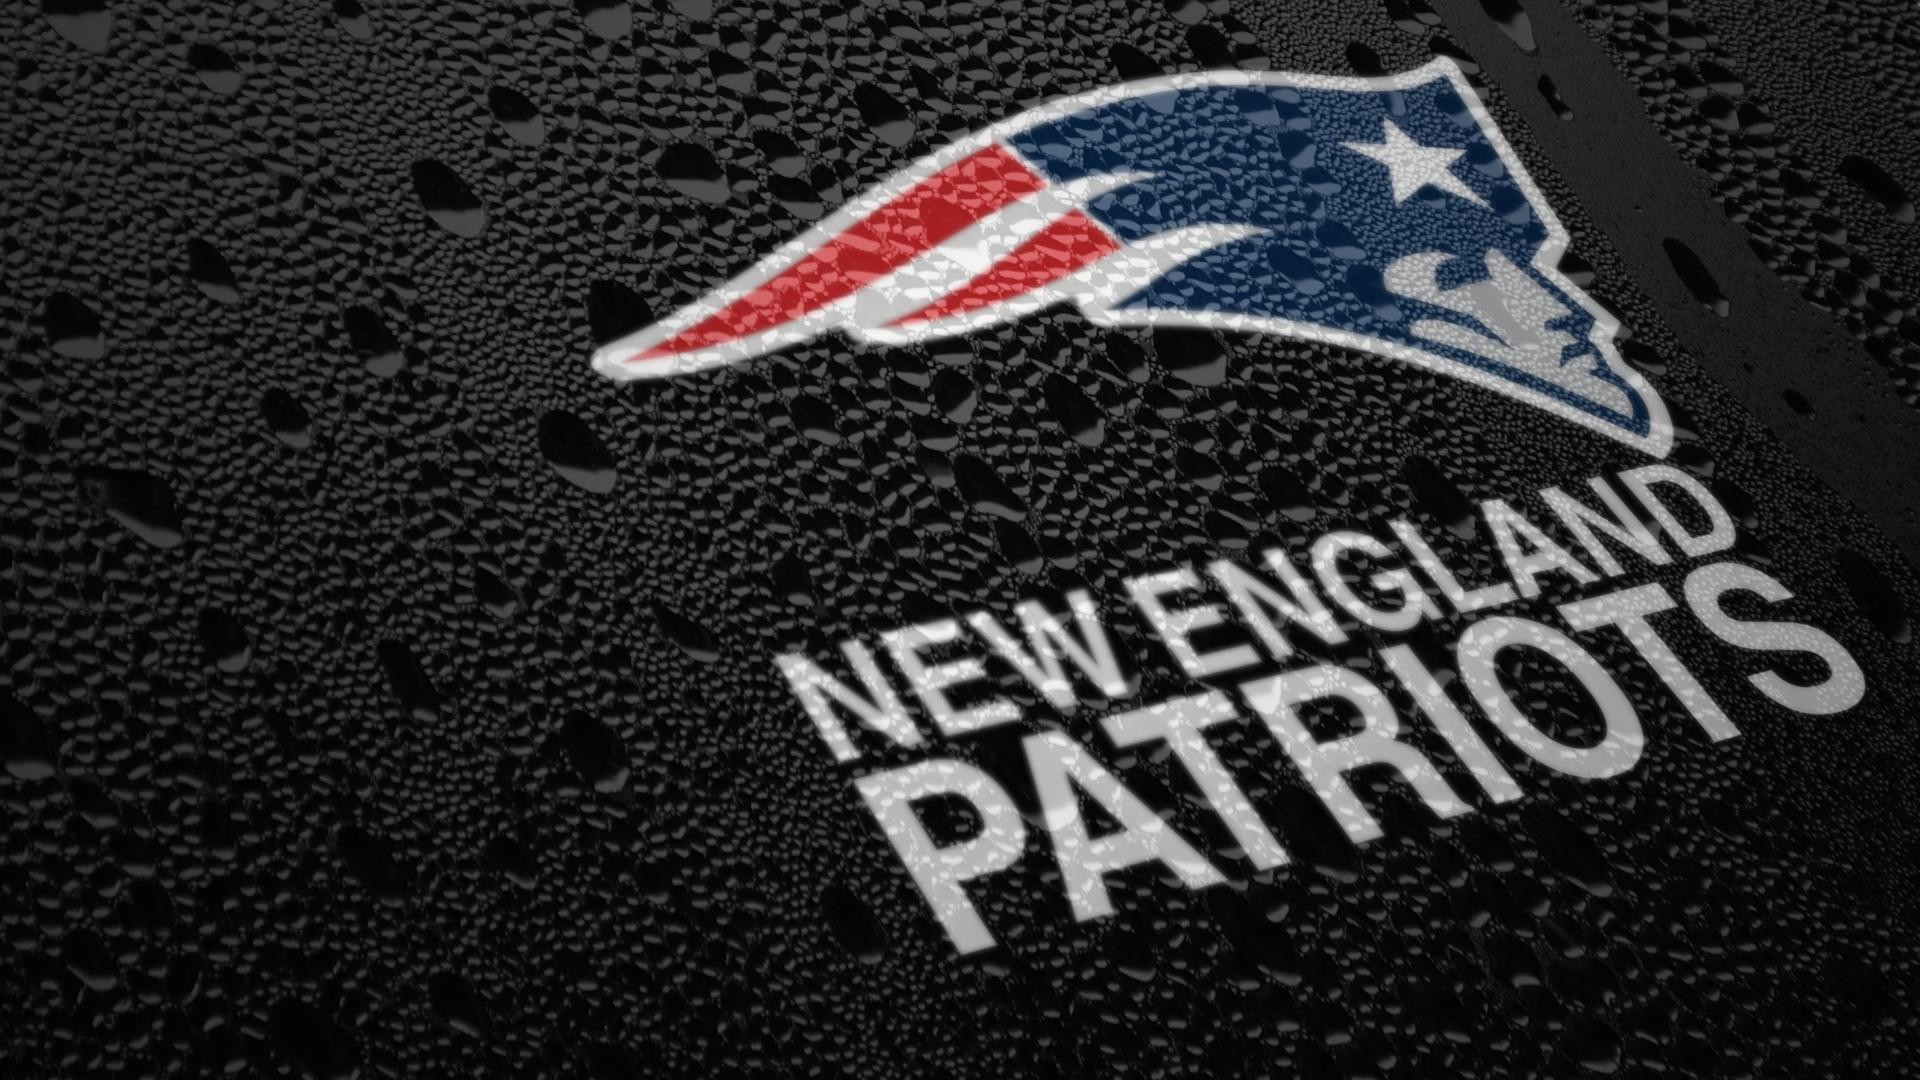 1920x1080 New England Patriots Schedule HD Desktop Wallpaper | HD Desktop | Free  Wallpapers | Pinterest | Patriots schedule and Wallpaper